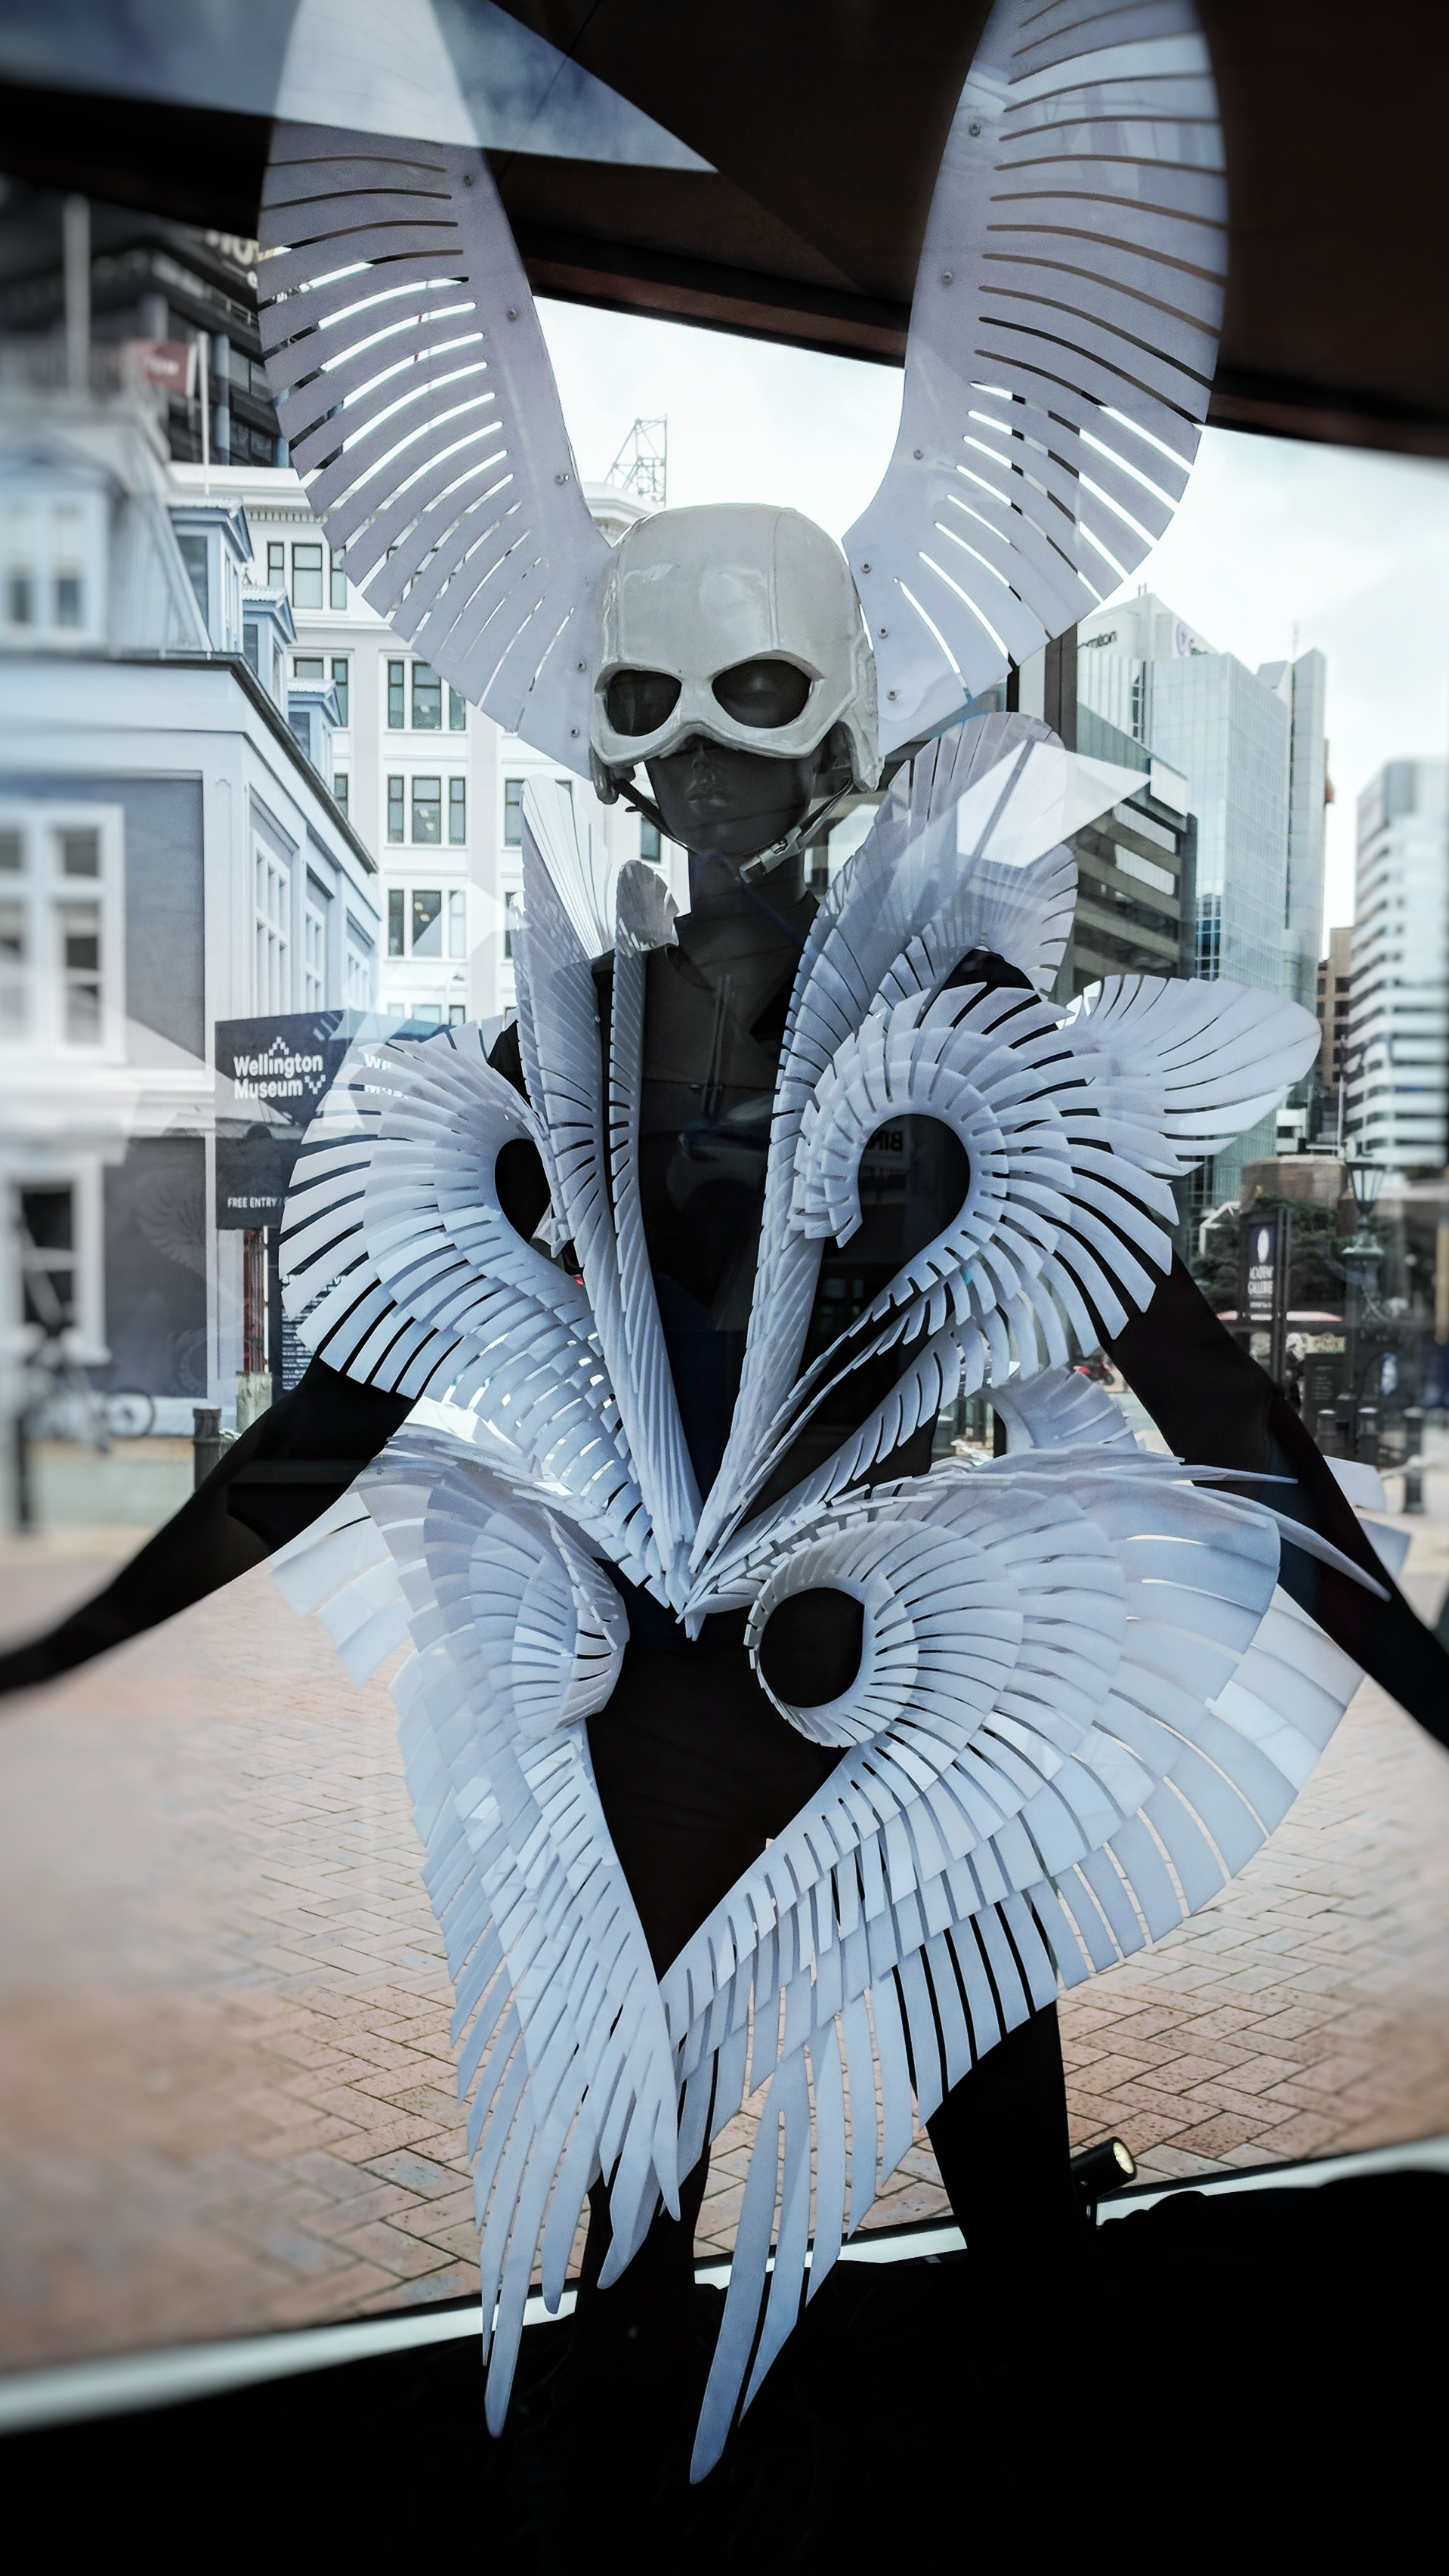 World Of WearableArt costume on display at Queens Wharf, Wellington